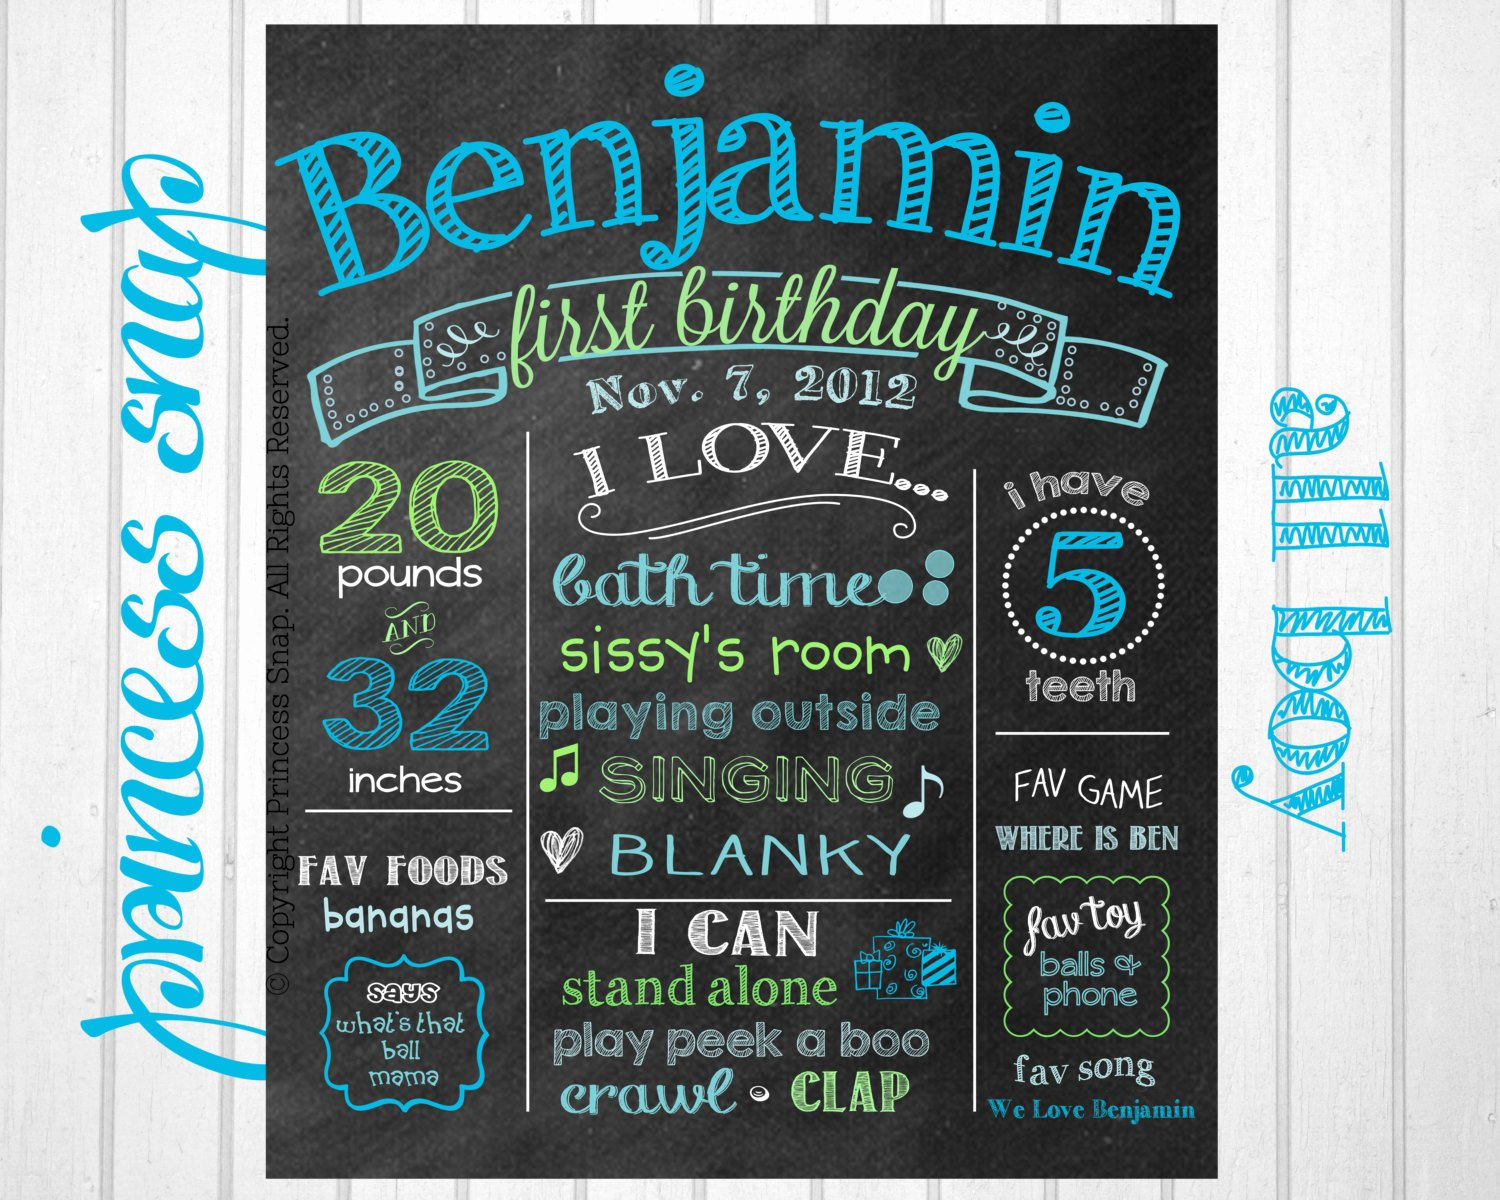 First Birthday Chalkboard Poster Luxury Boy First Birthday Chalkboard Poster Blue and Green 1st